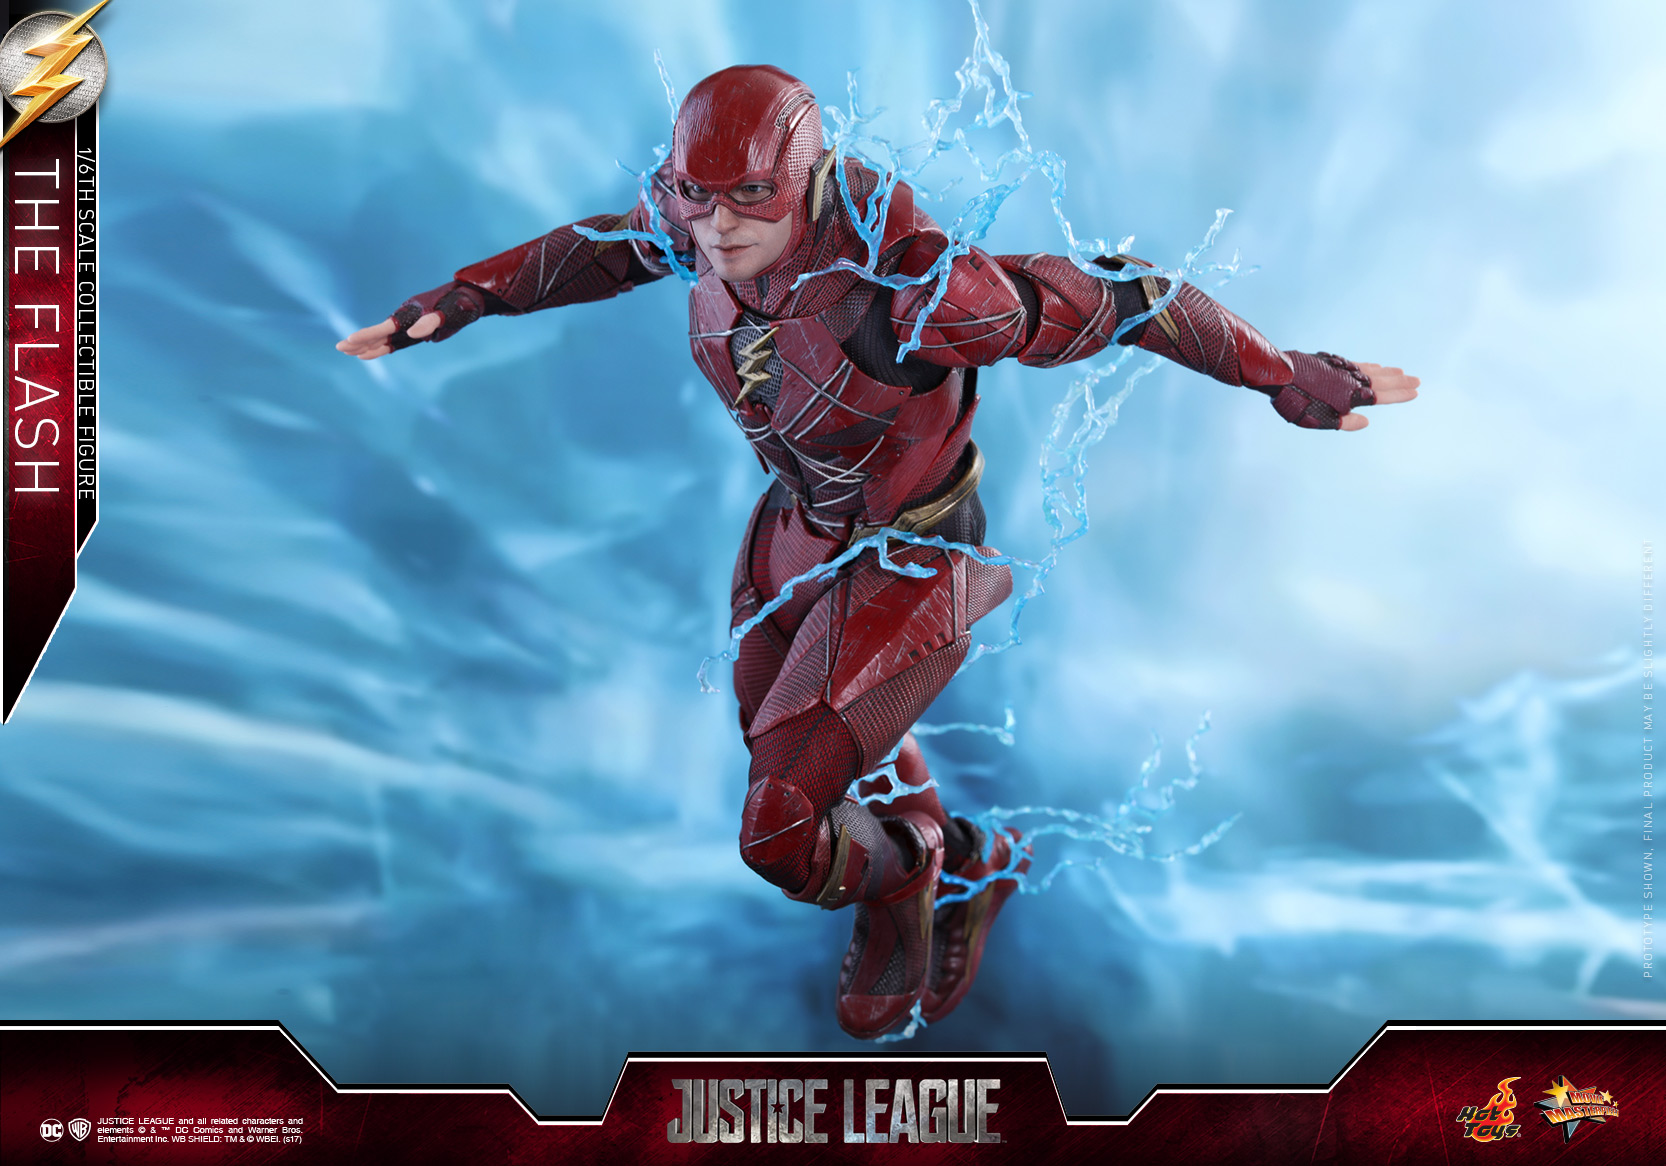 Hot Toys - Justice League - The Flash Collectible Figure_PR08.jpg